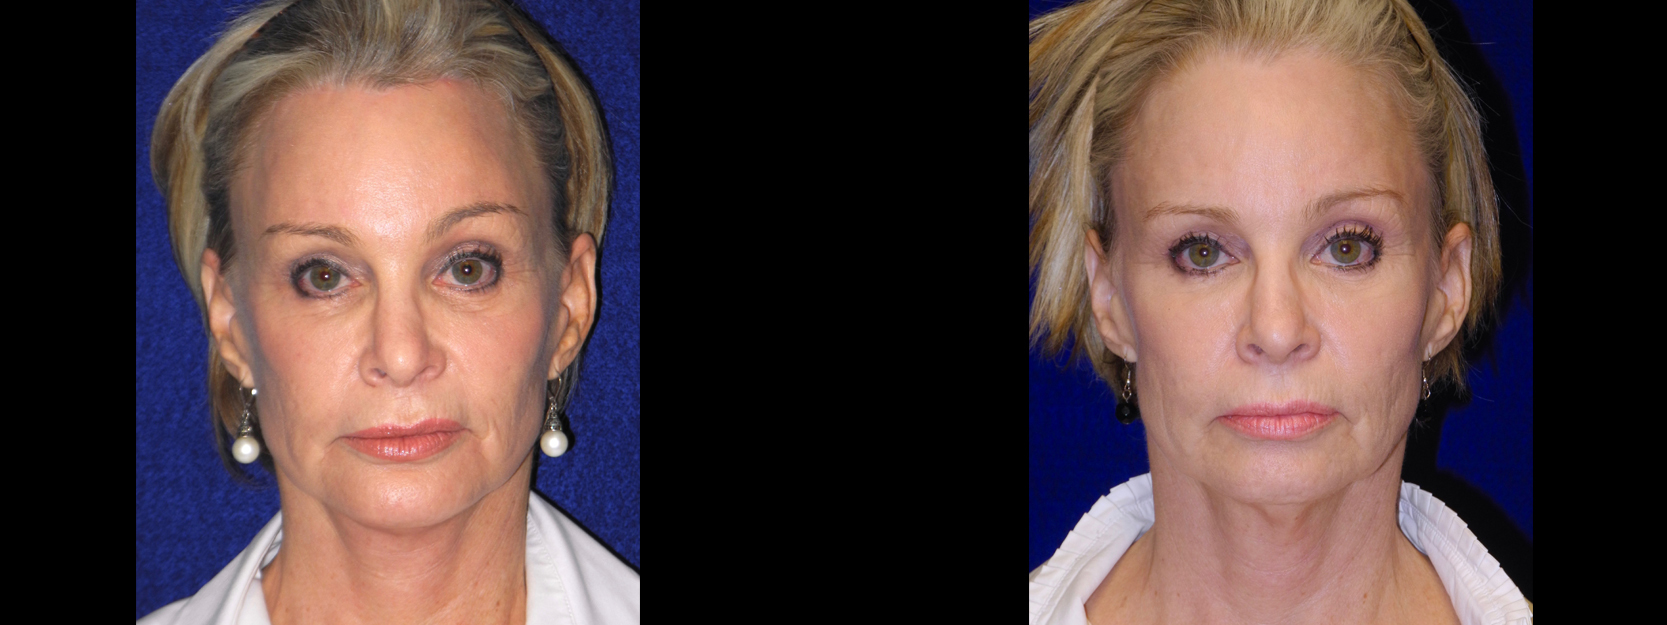 Frontal View - Facelift, Browlift, Chin Implant